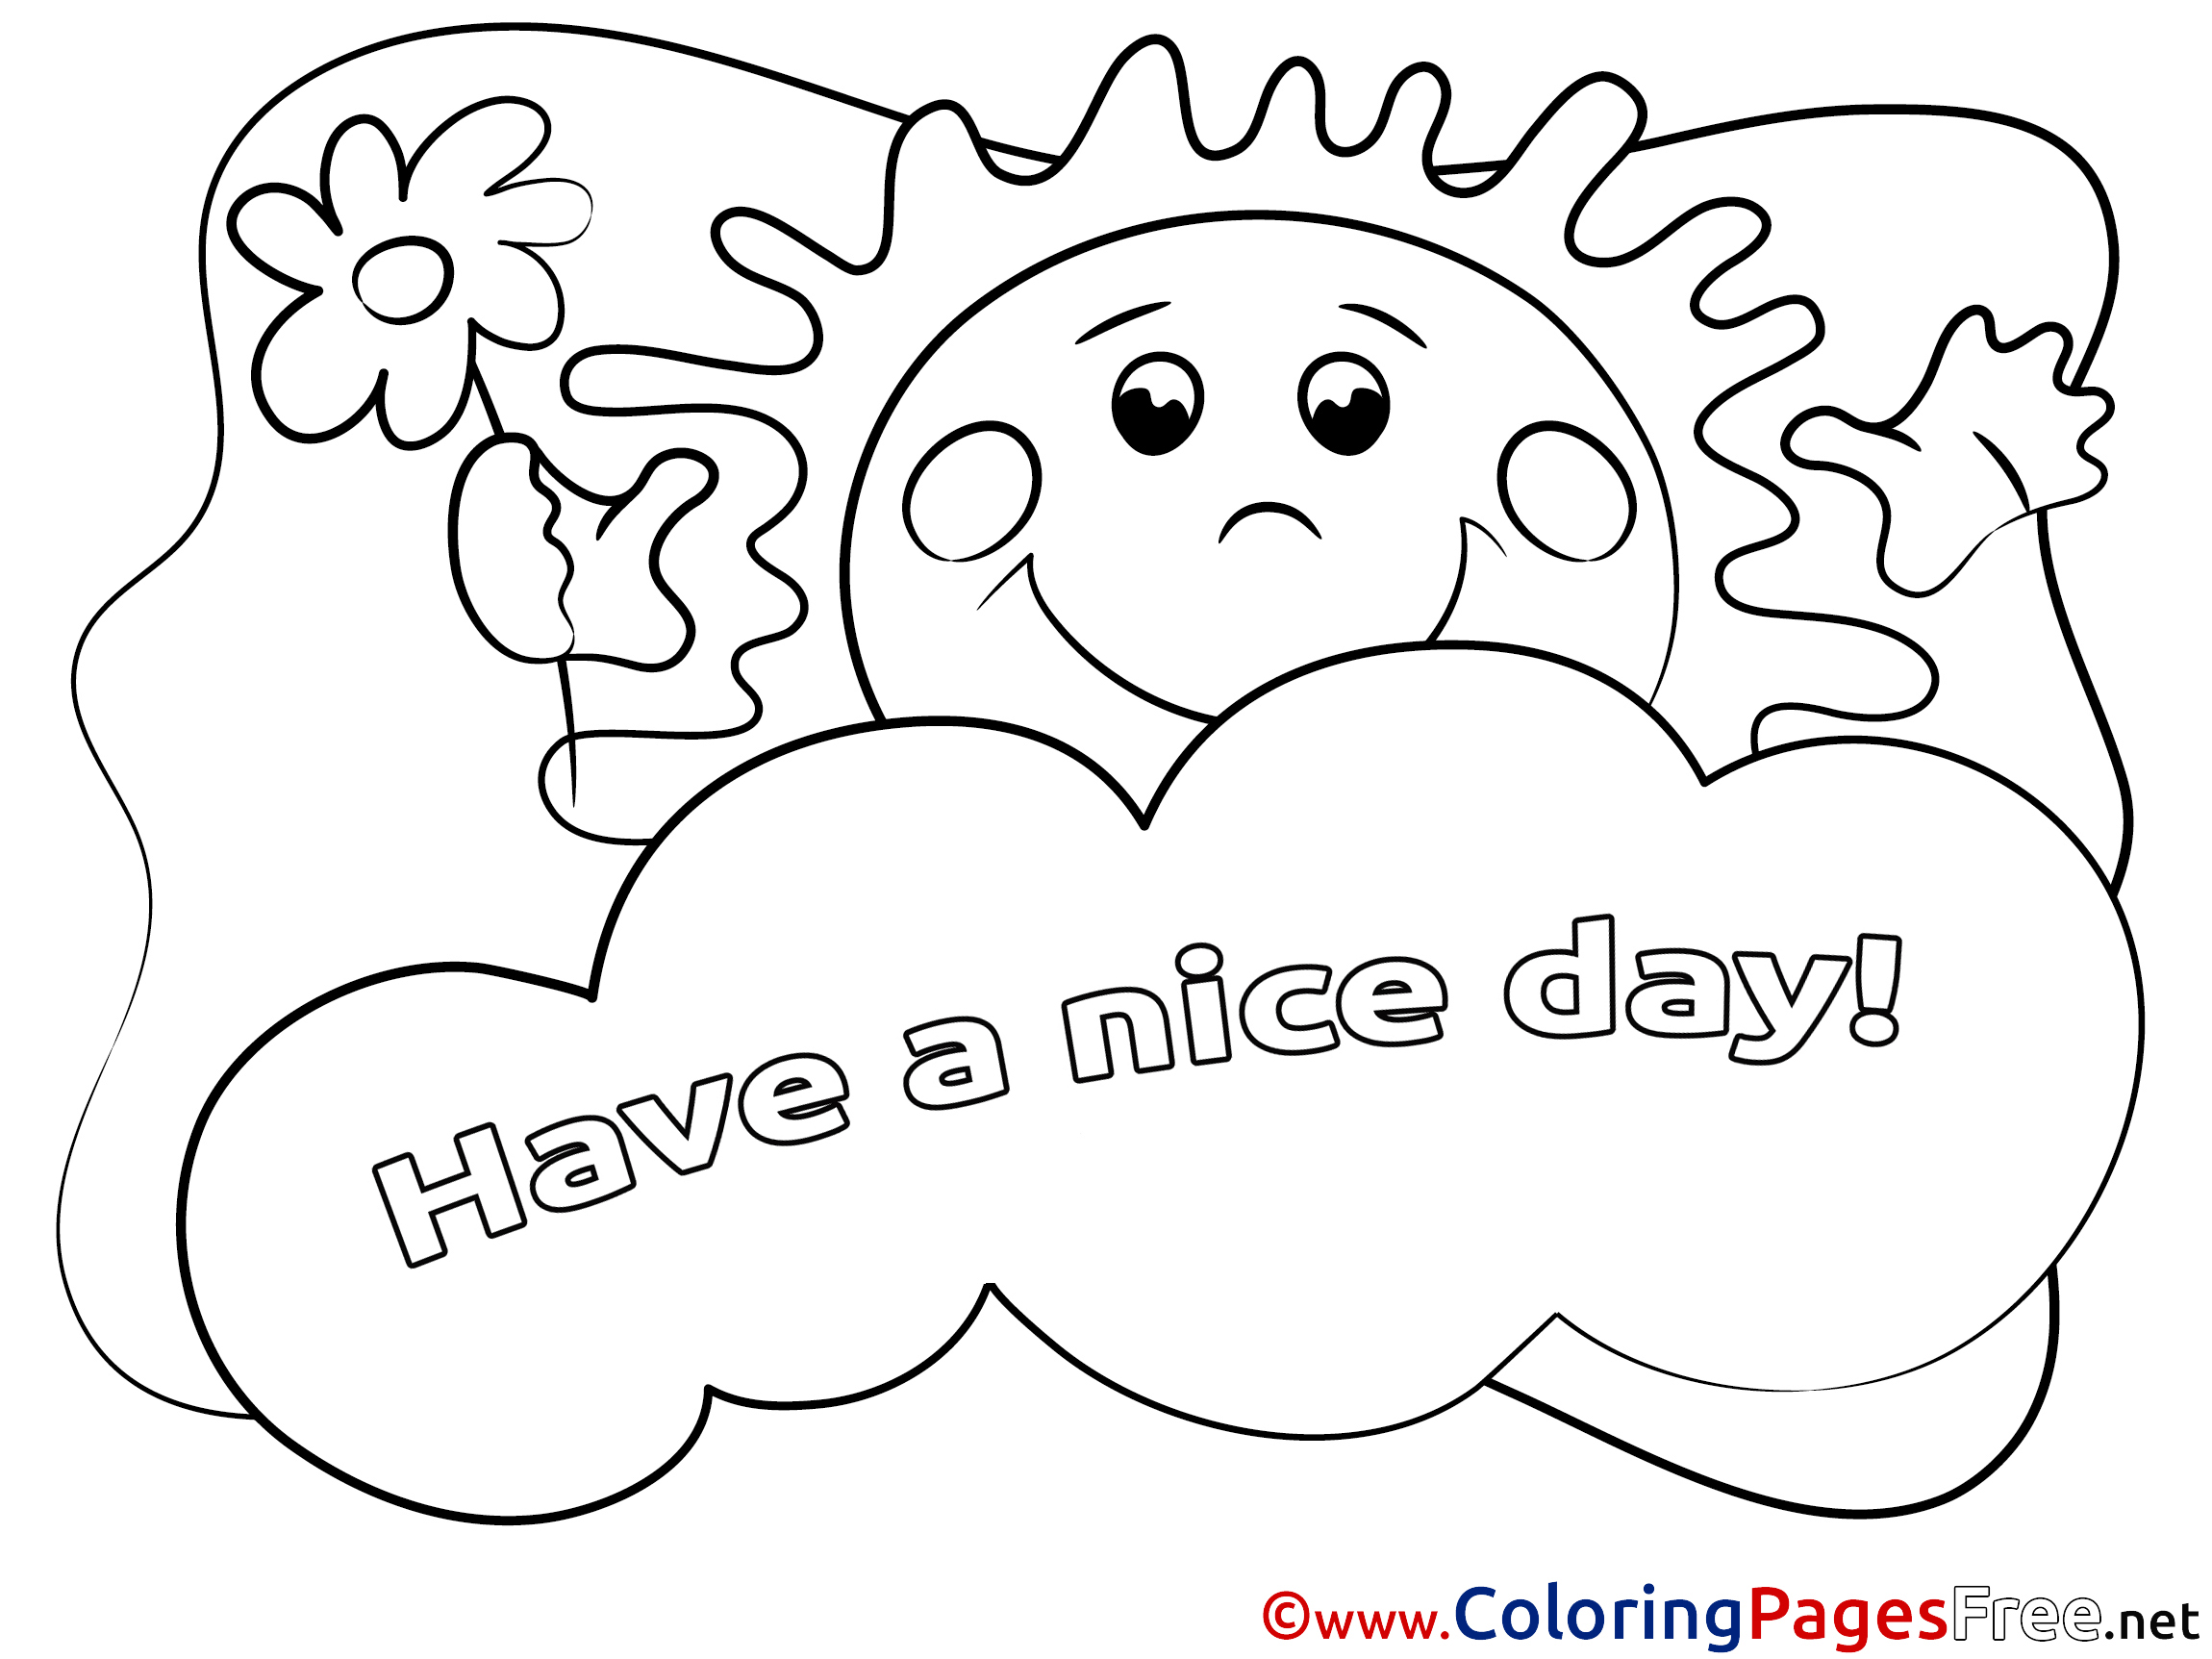 Sun Coloring Sheets Have A Nice Day Free